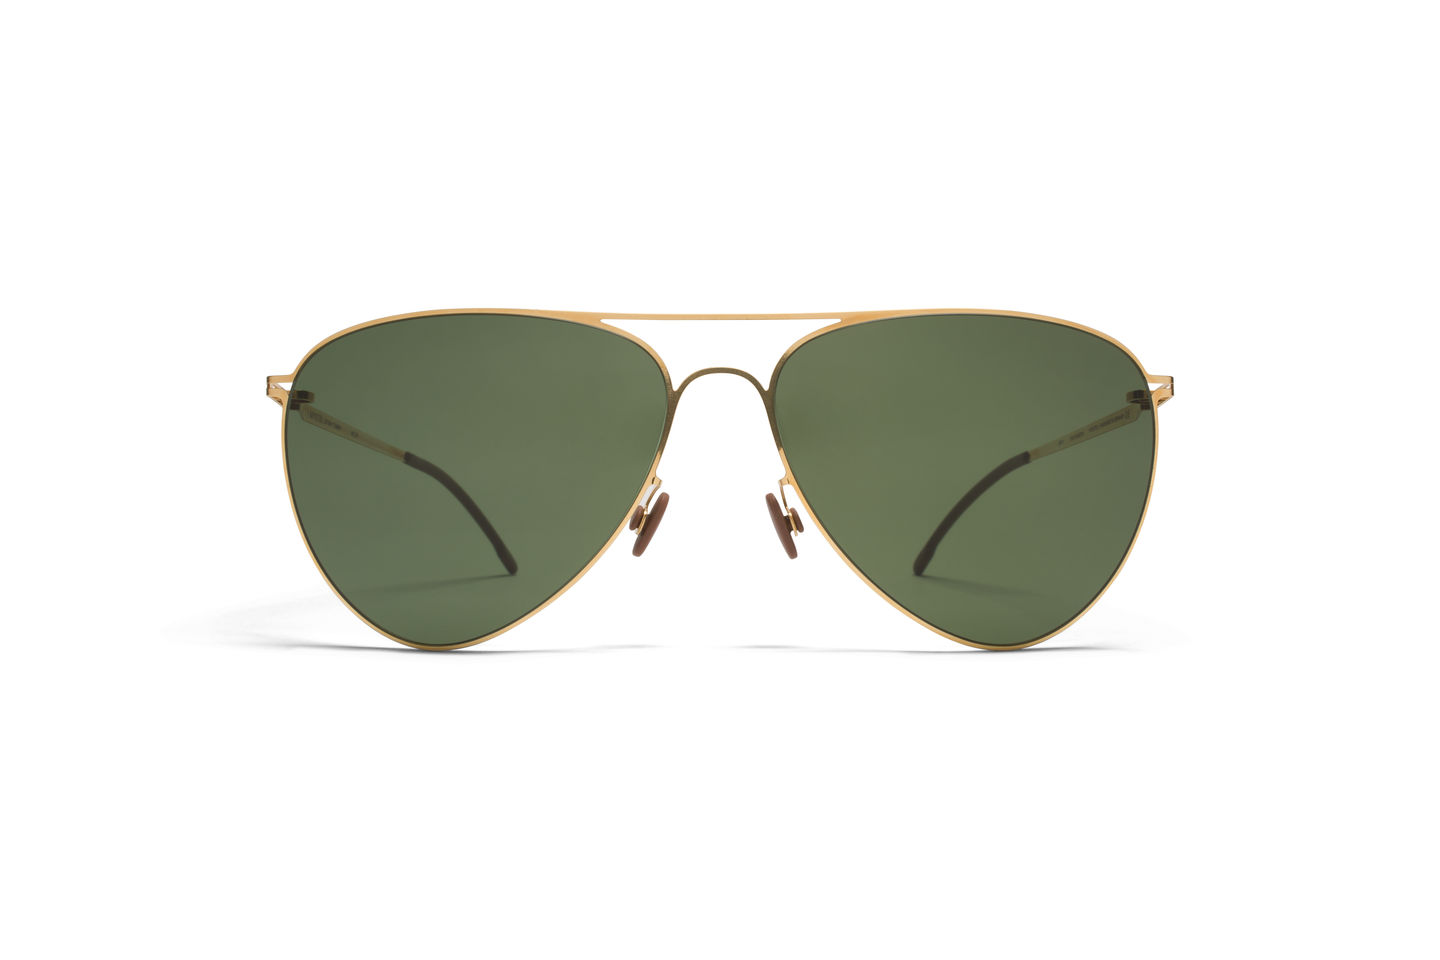 MYKITA aviator sunglasses TJURRE in MYKITA JOURNAL's Tropical Edit